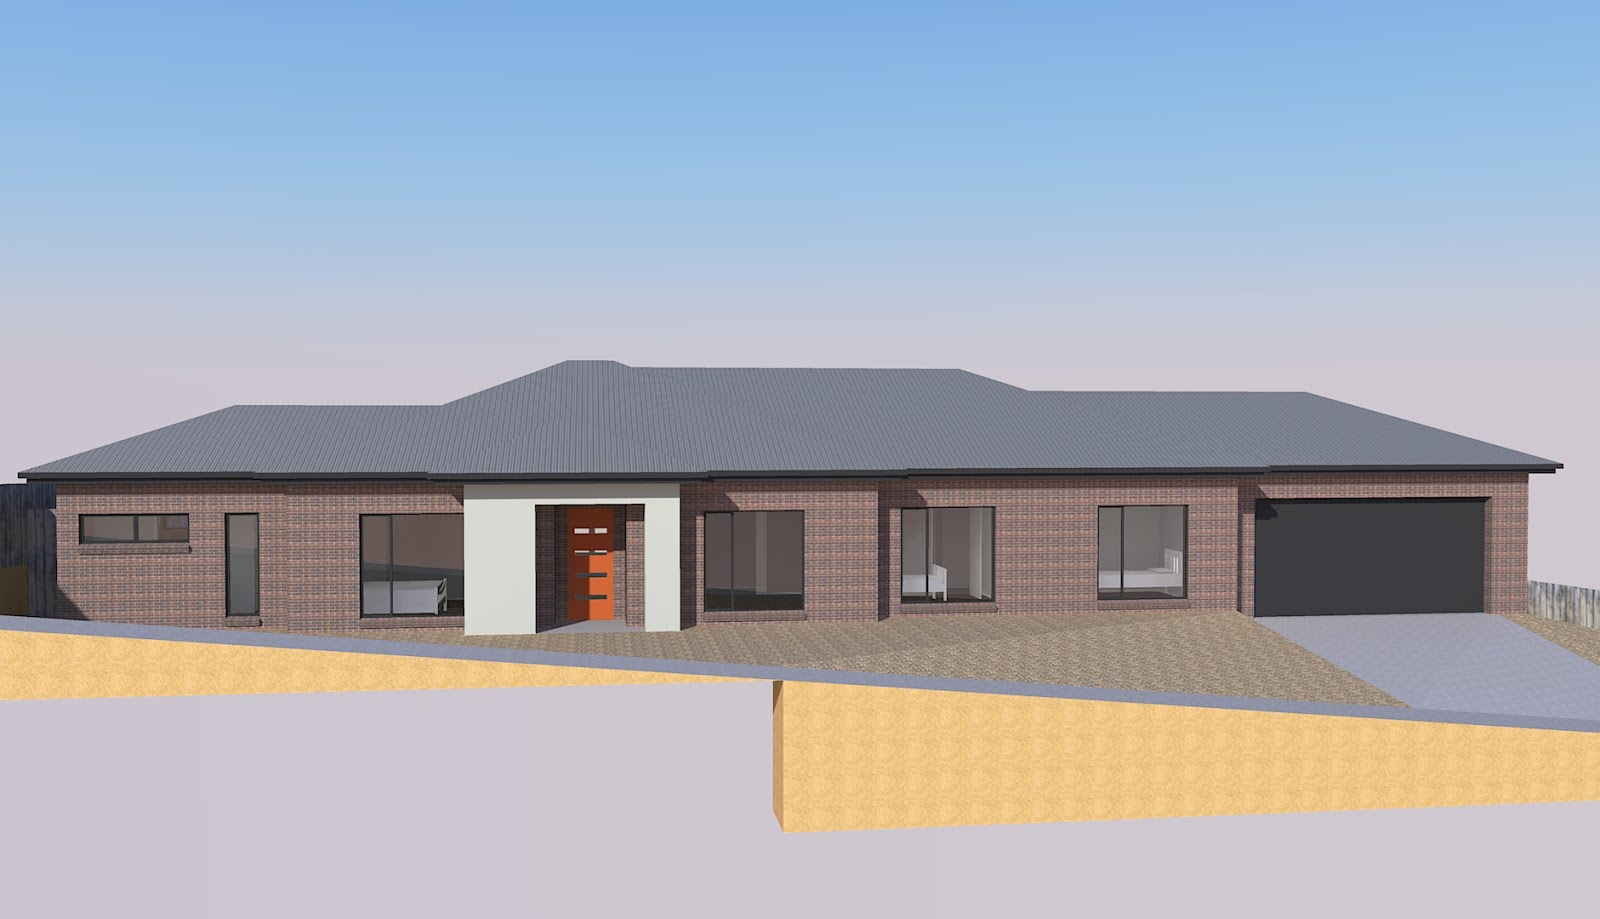 Yourbuilds our house build sketchup new finish renders for Sketchup building